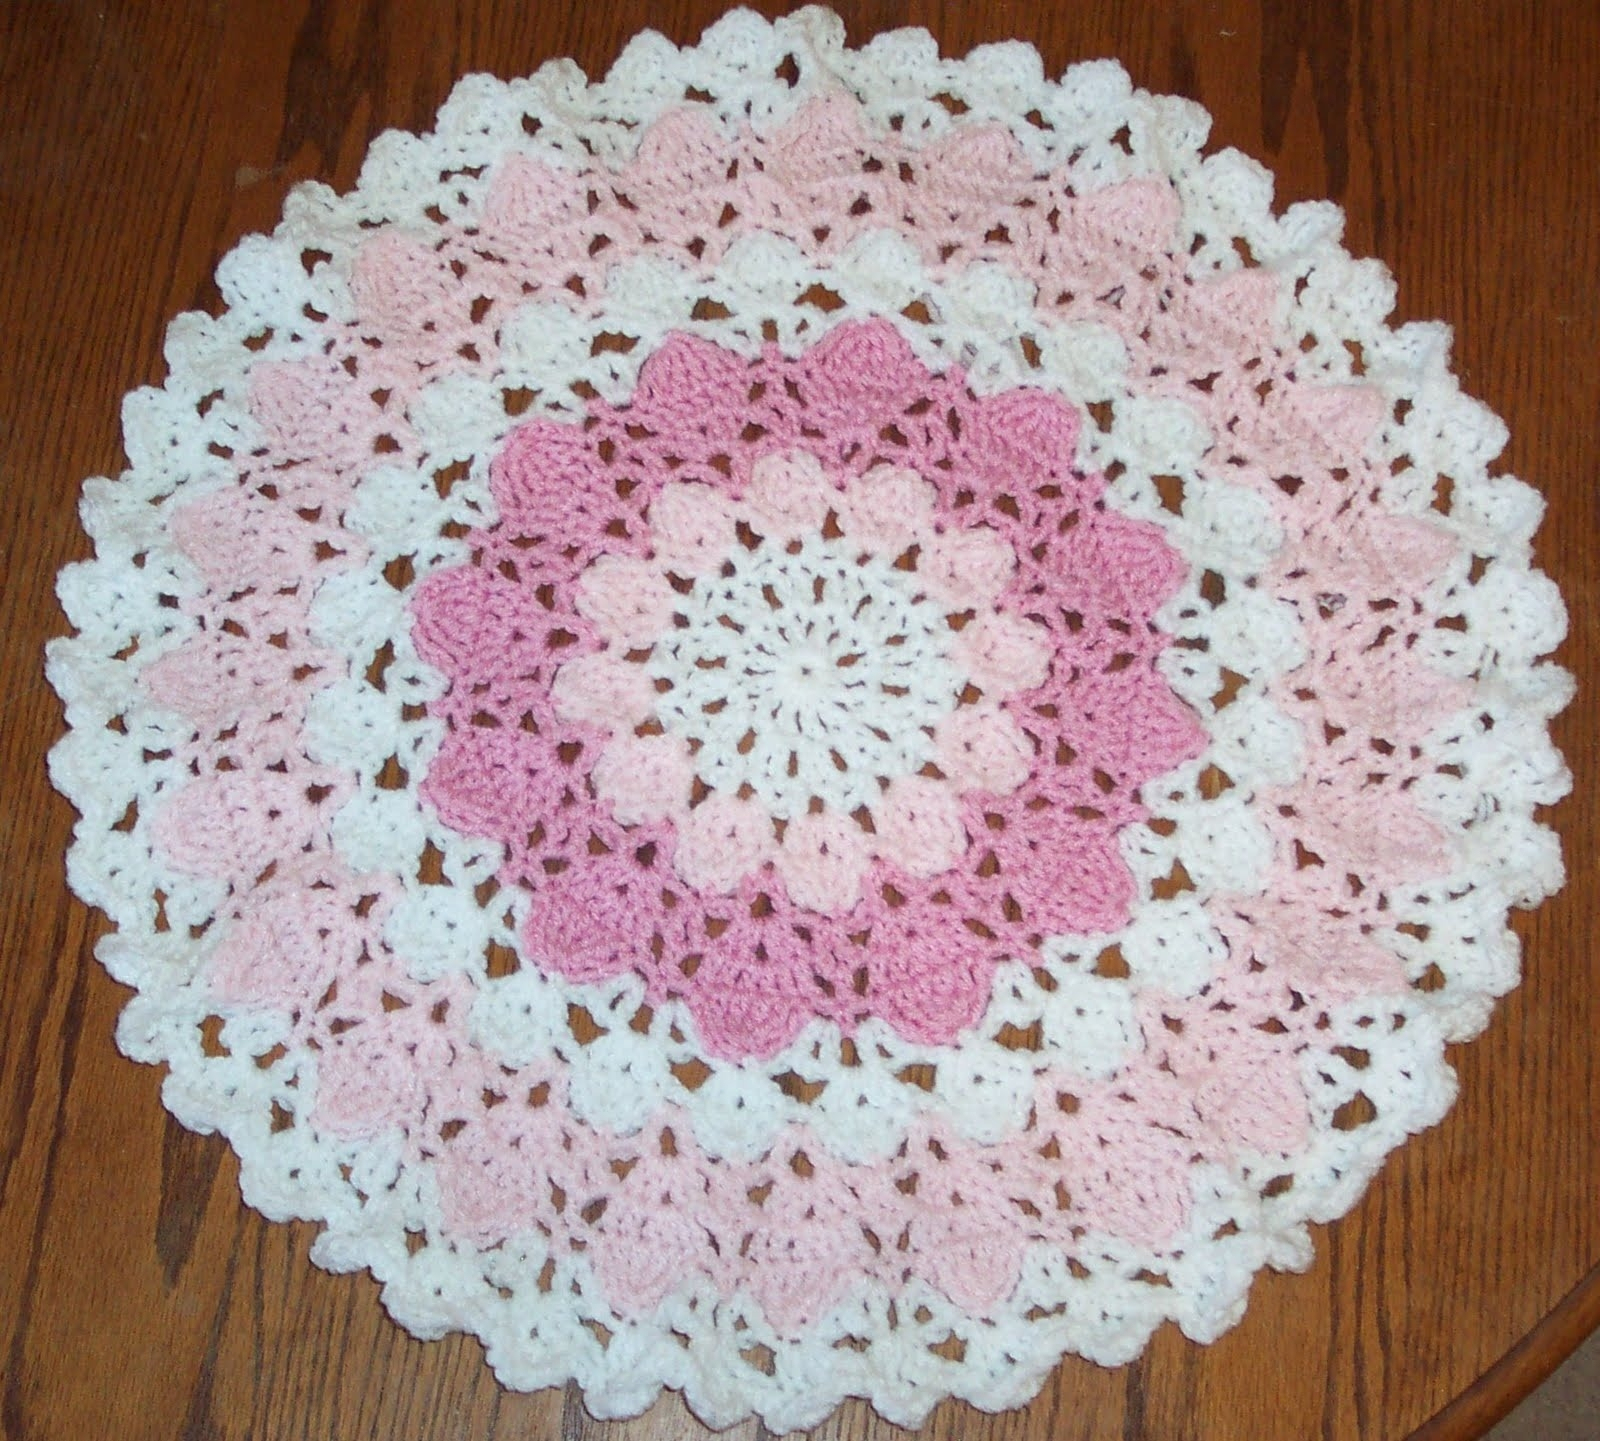 Pictures Of Printable Free Crochet Patterns … Of Crochet Doily For - Free Printable Crochet Patterns